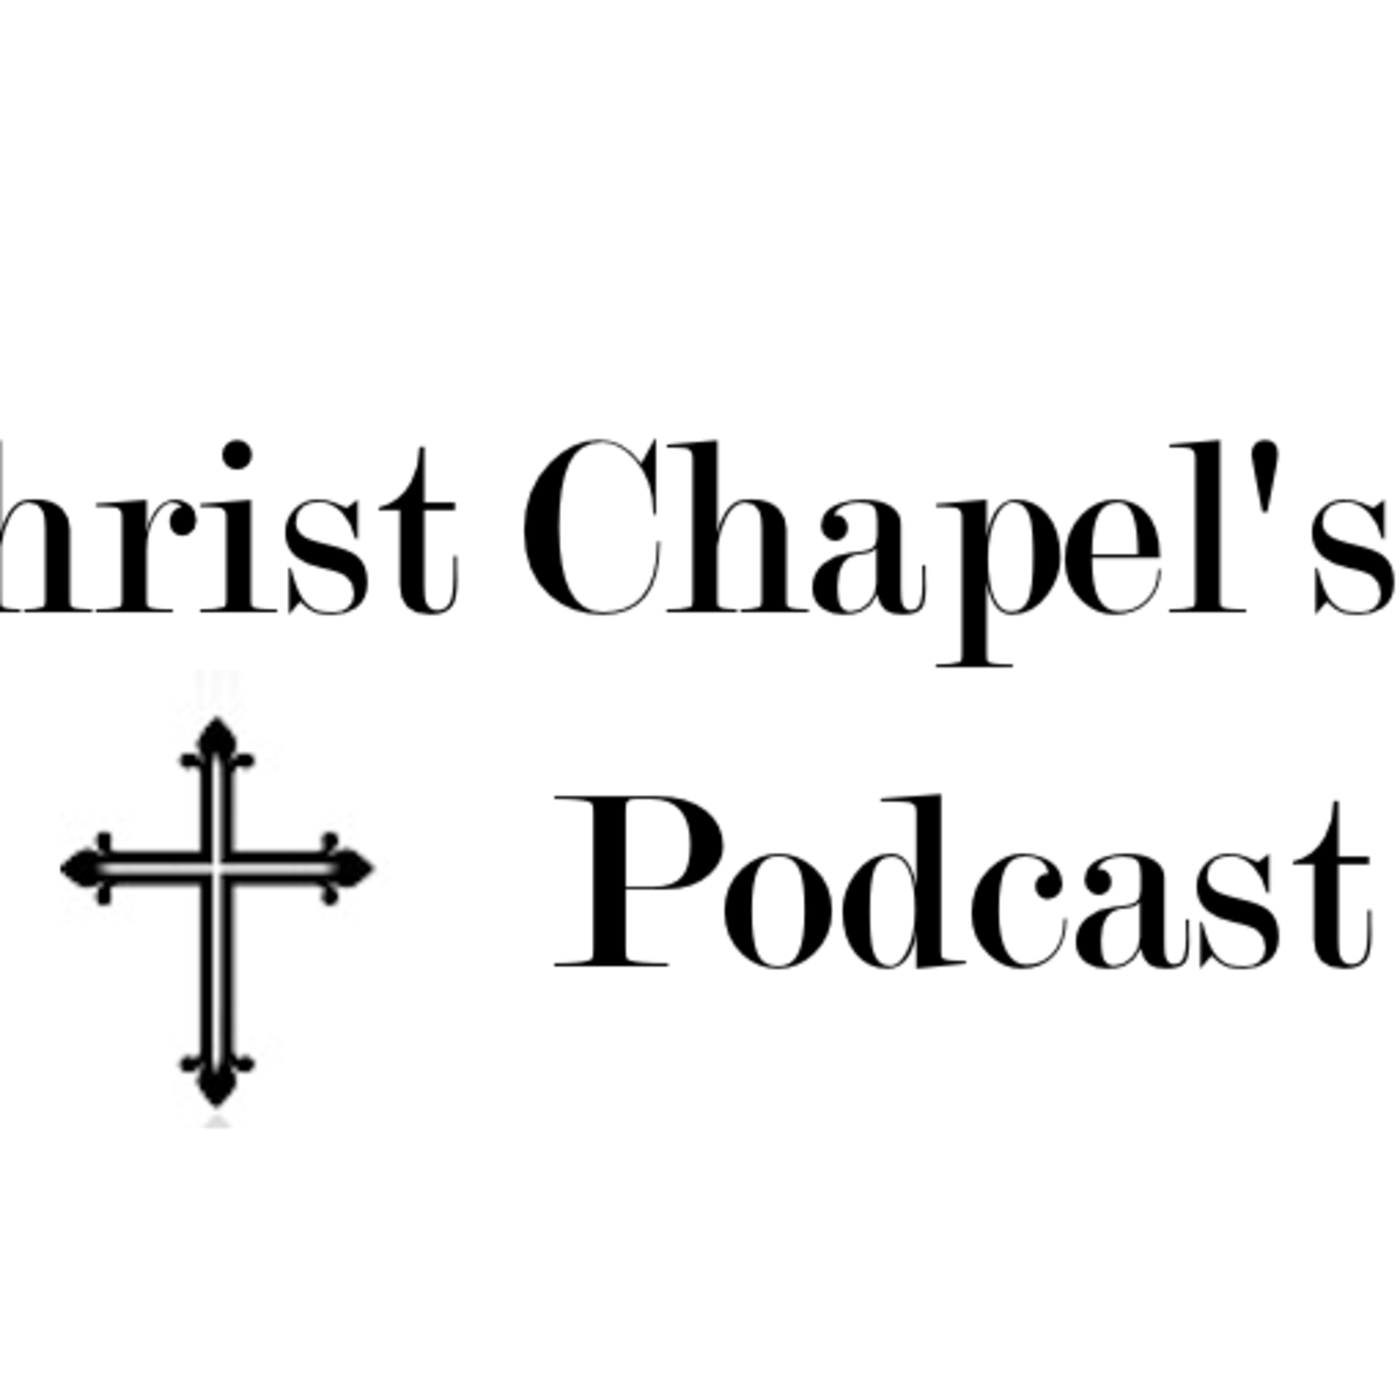 Christ Chapel's Podcast